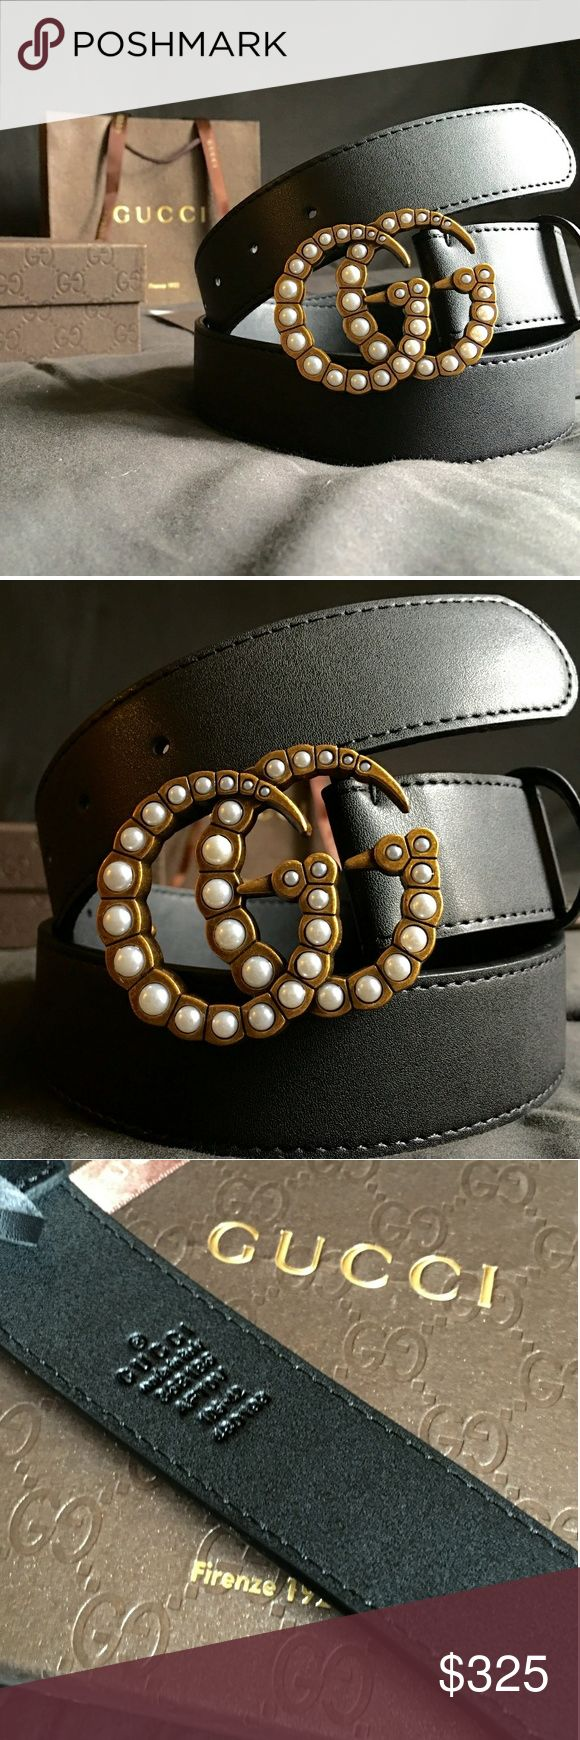 """Gucci Double G Belt!!! Gucci GG Belt W/Pearl & Antique Brass Double G Buckle!!!  Brand New!!!  Size Available - 32"""", 34"""", 36"""", 38"""", 40"""", 42""""!!!  Includes Gucci Belt, Gift Box, Dust Bag, Ribbon, Etc!!!  Great Gift Idea!!!  Last Available!!!  Check My Listings For Other Great Items!!!              Ignore: Gucci gg monogram casual dress belts men's women's guccissma leather monogram web tiger bee embossed panther wool cable knit blooms supreme print angry cat ufo dragon studded snake double g…"""